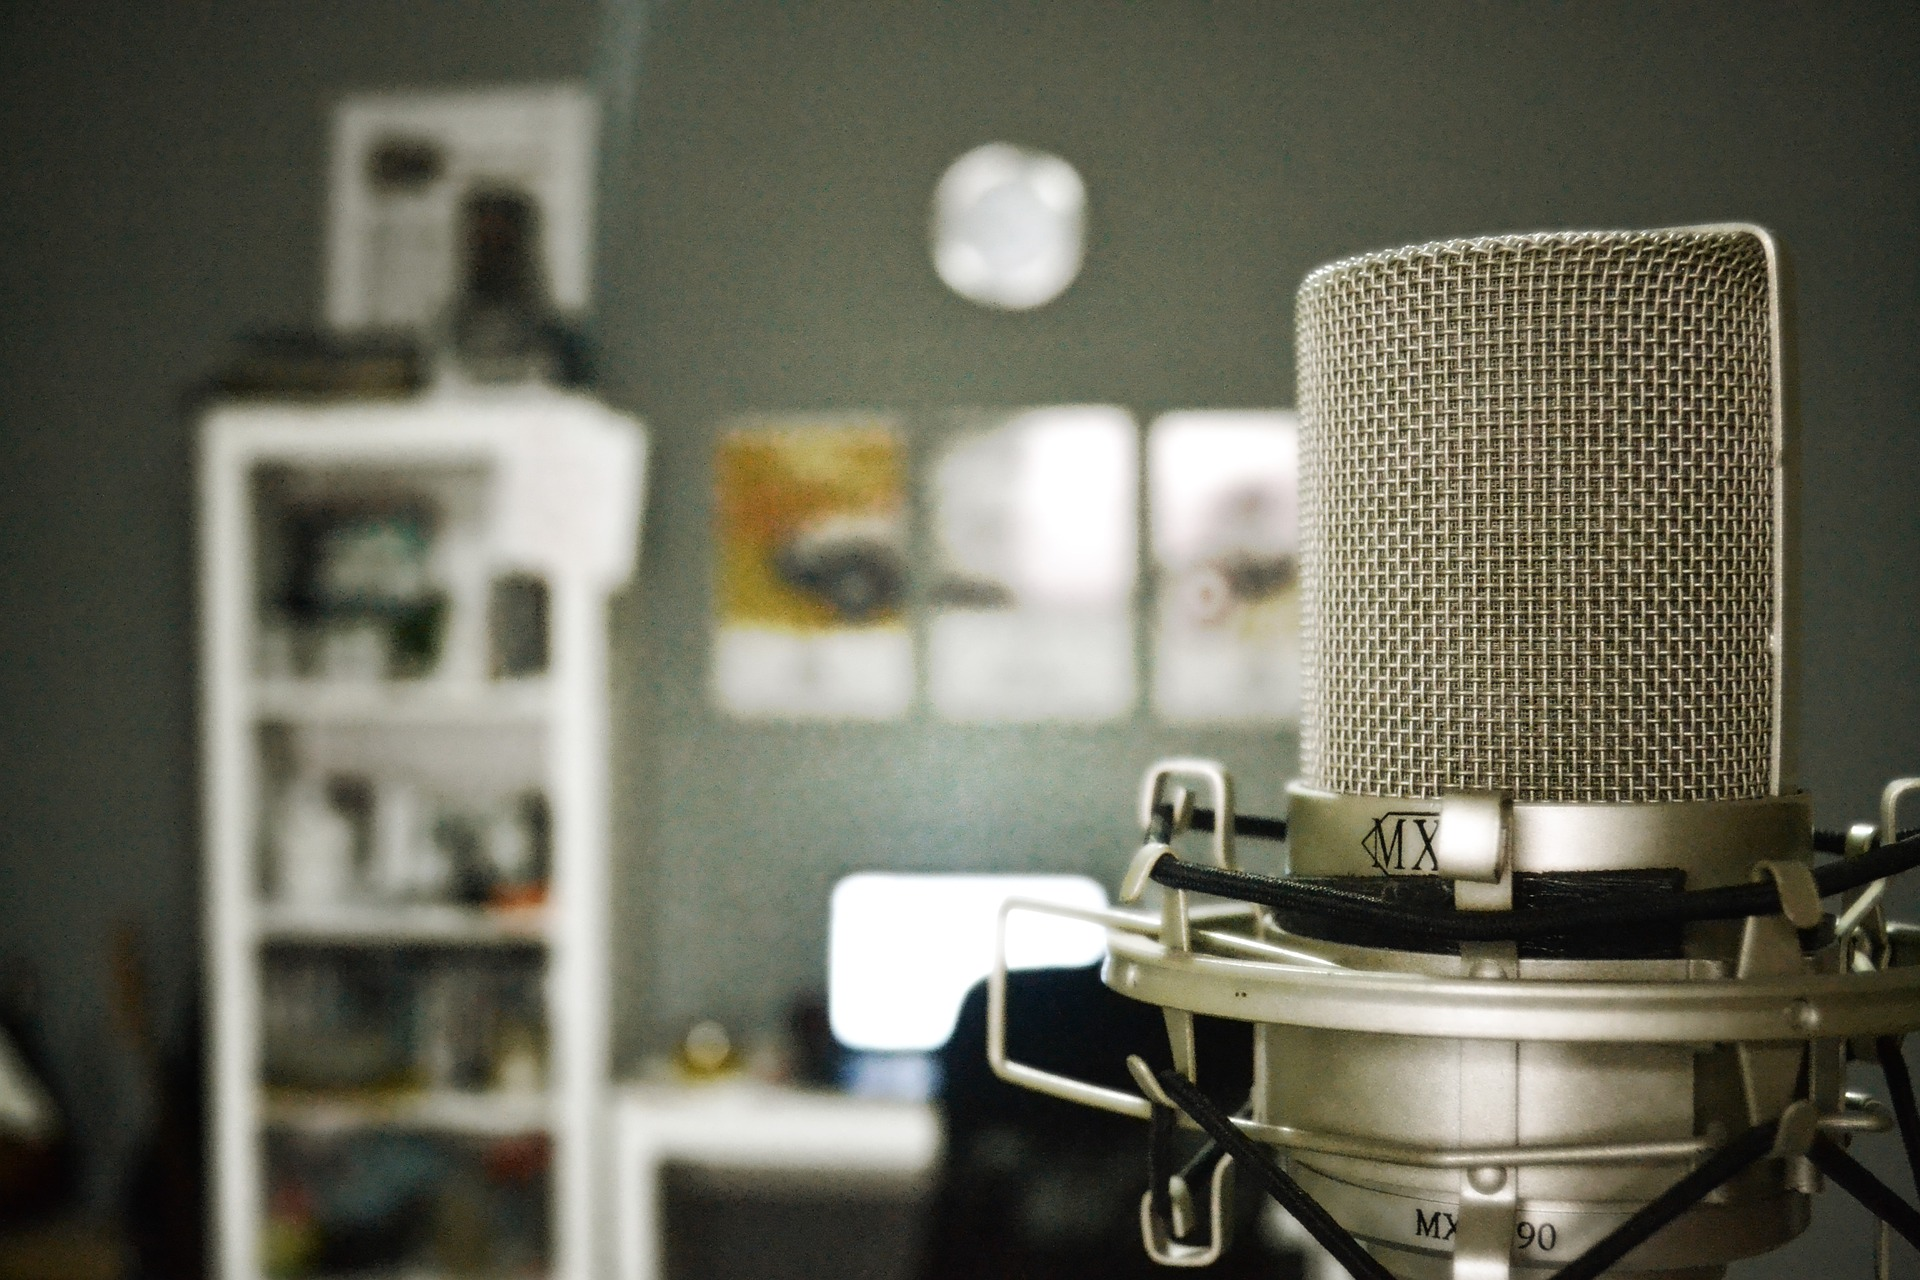 I will record a VOICEOVER for your text